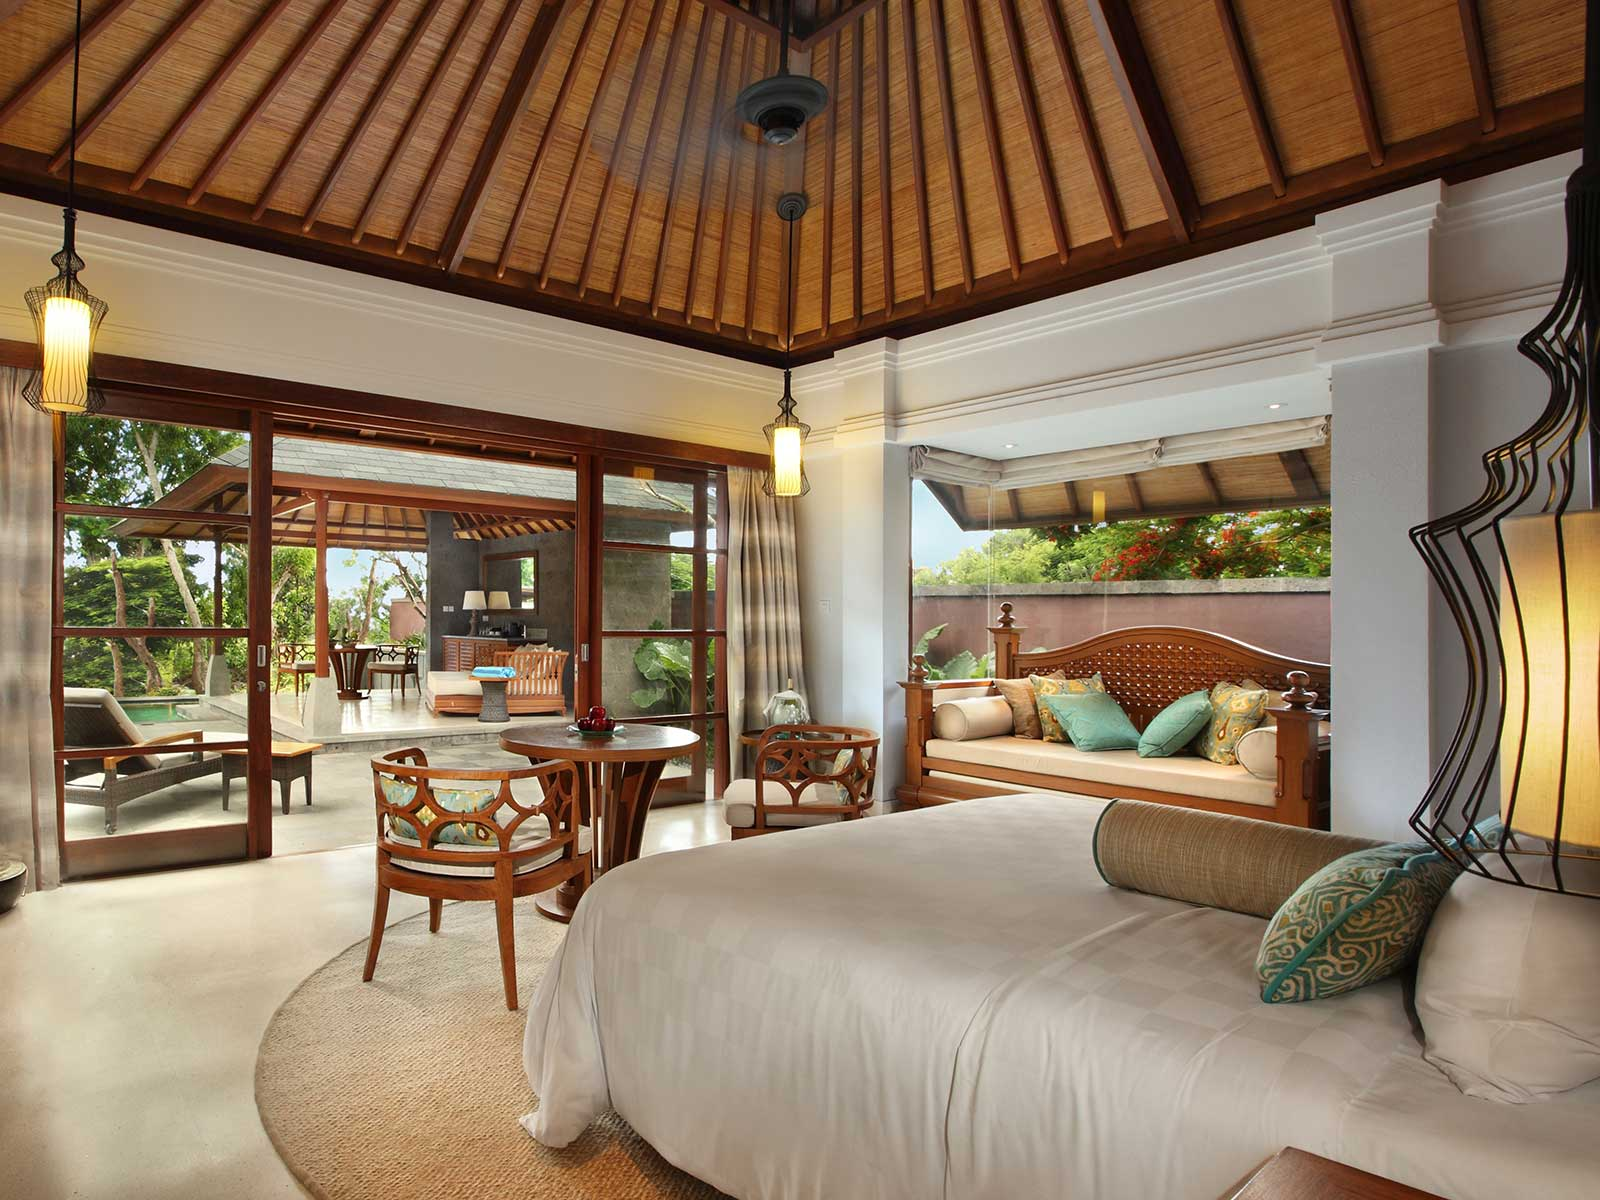 First Look Of Hilton Bali Resort The Next Family Getaway Cn Traveller India